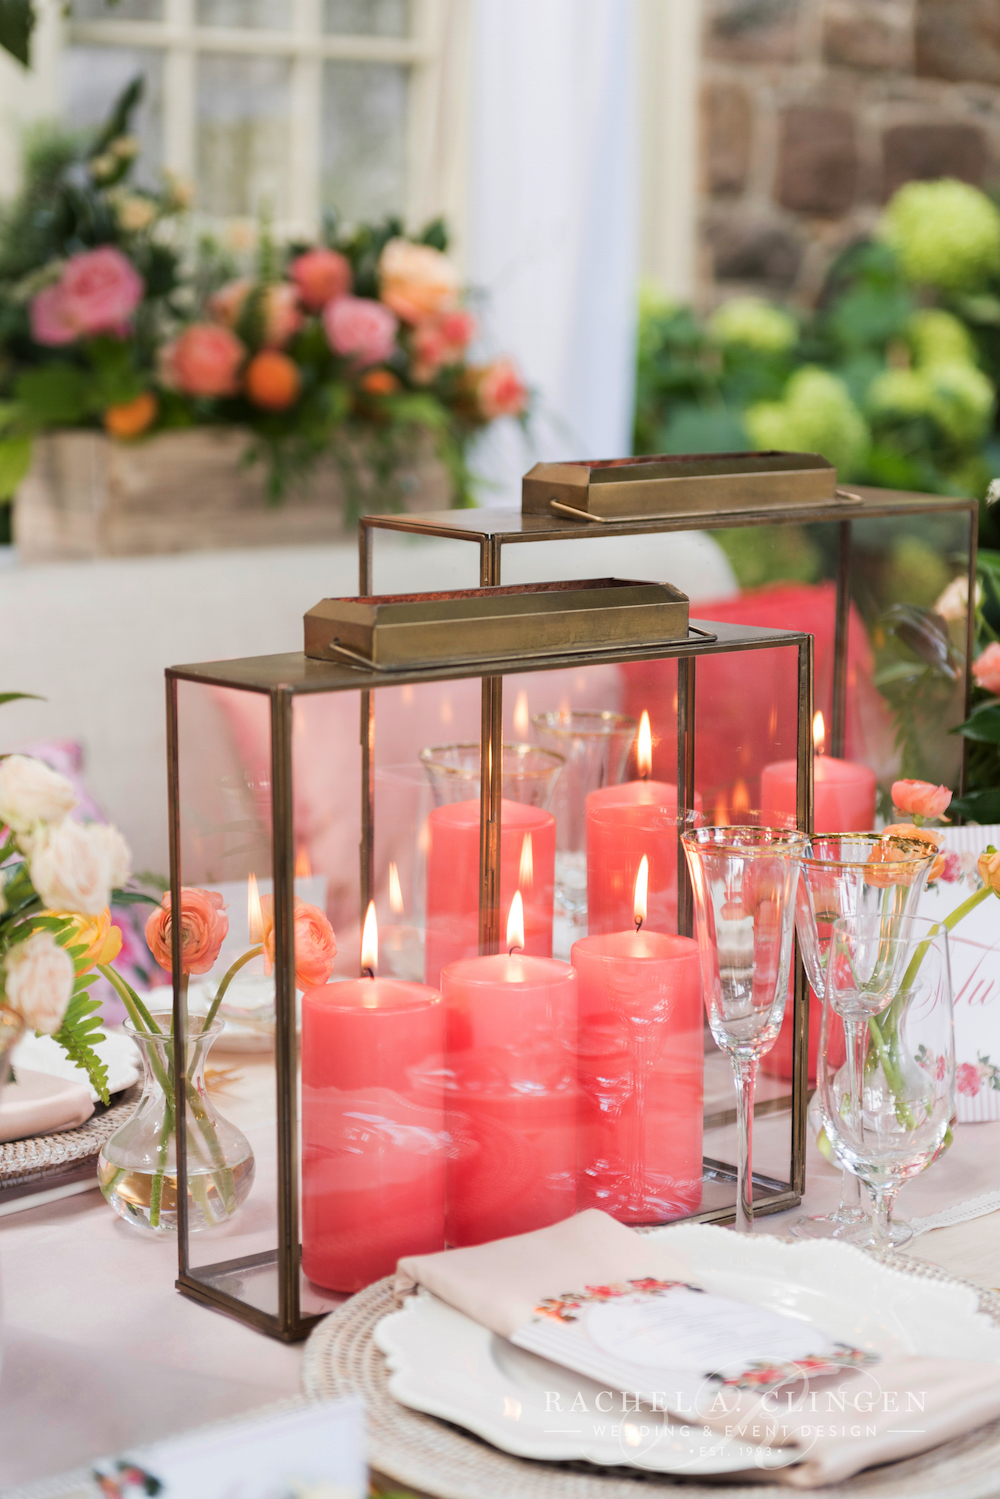 Peach Coral Wedding Decor Wedding Decor Toronto Rachel A Clingen